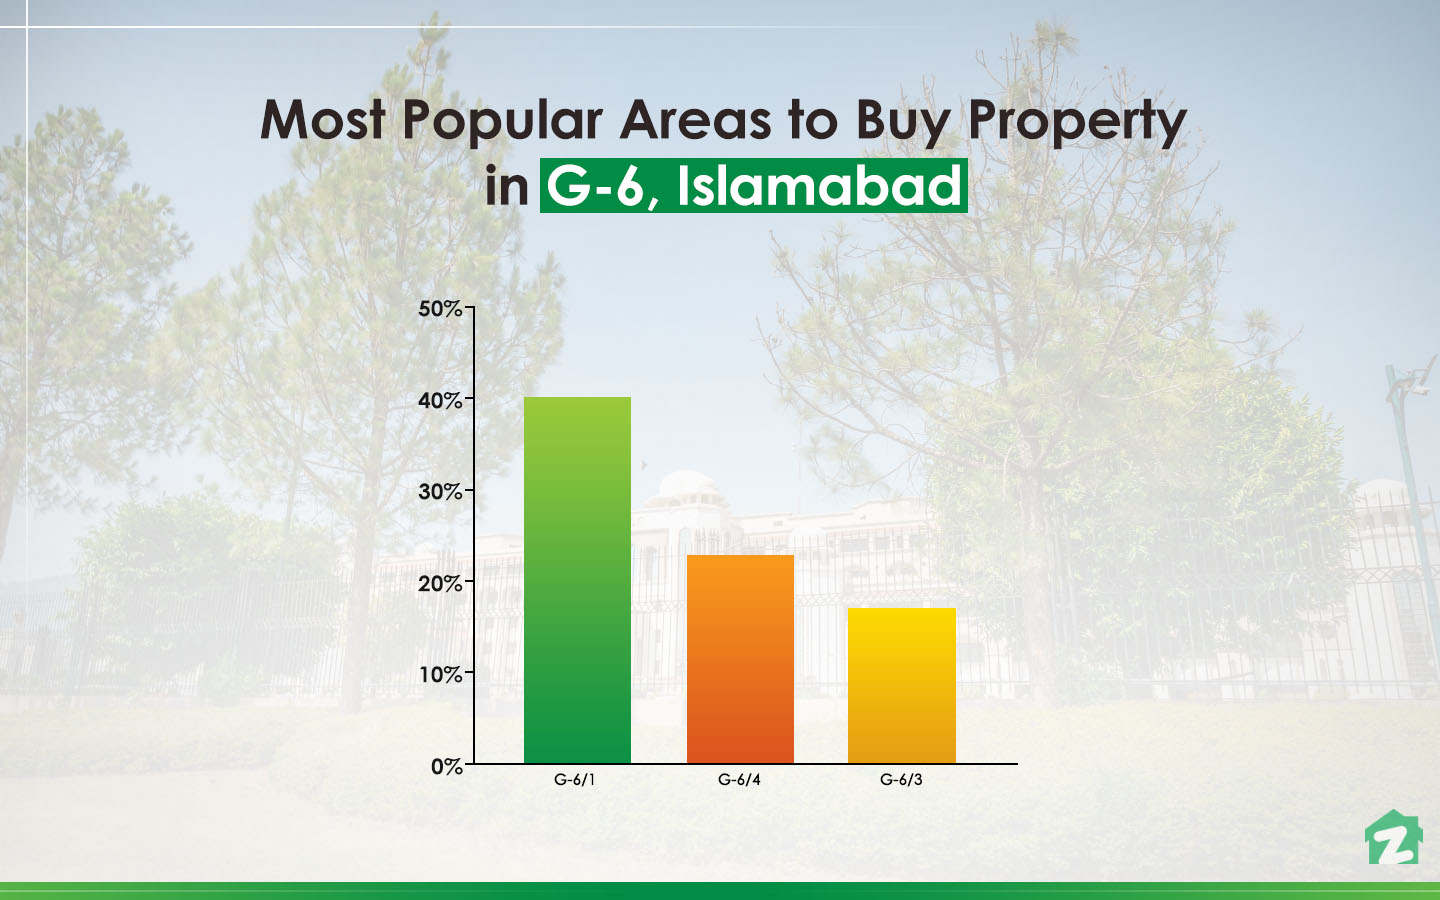 Most Popular Areas for Buying Property in G-6 Islamabad